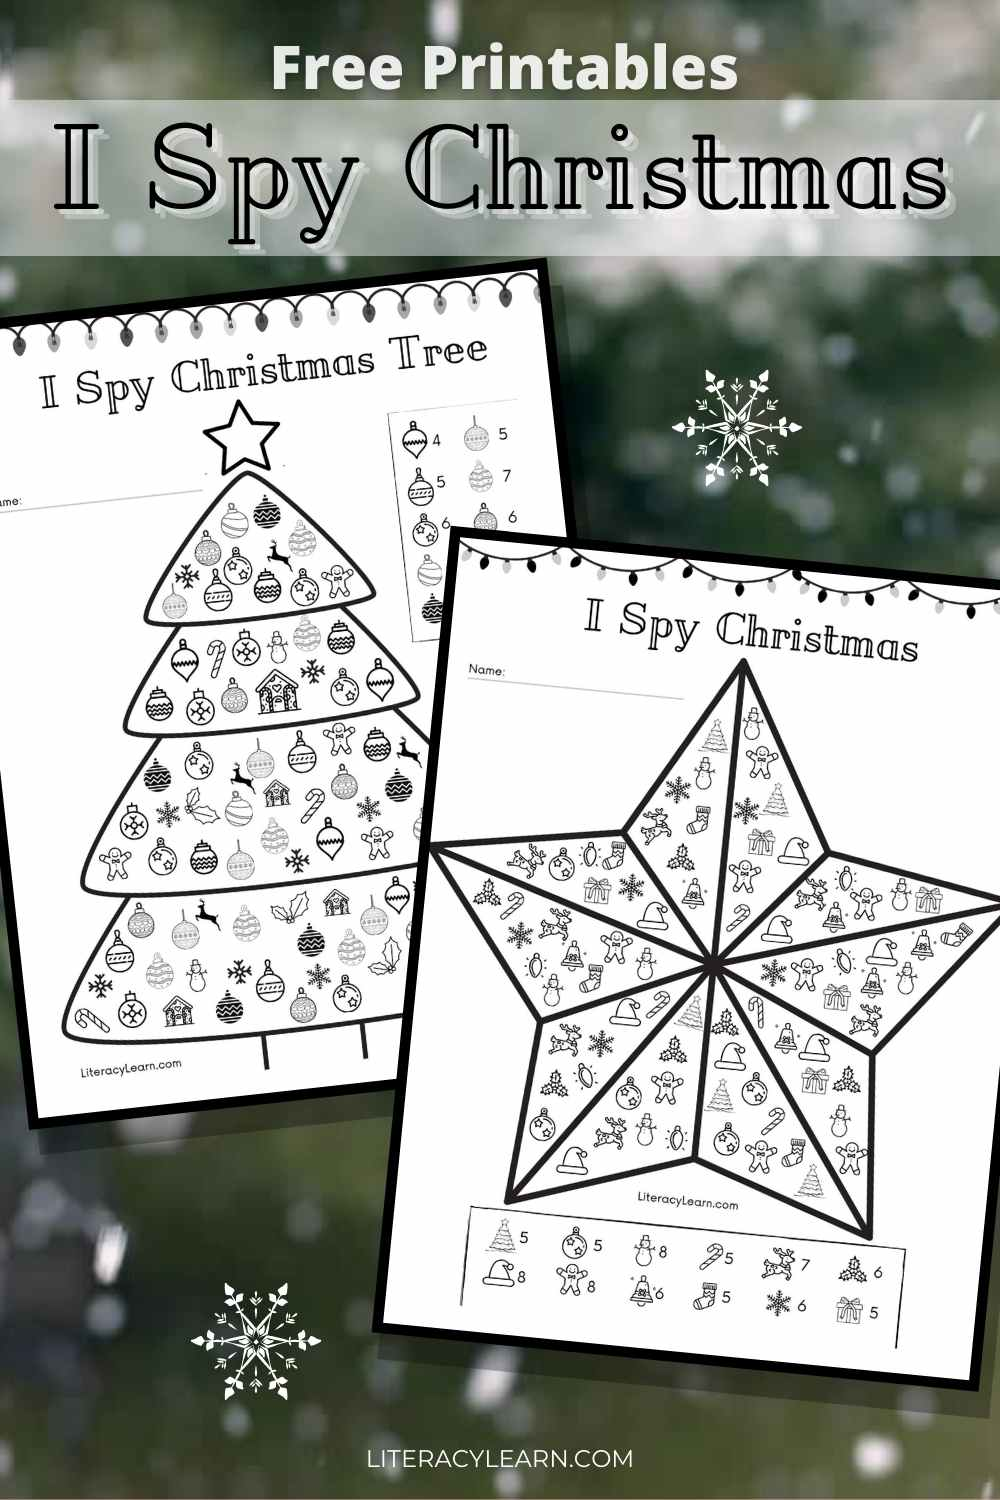 """Graphic with the two printable worksheets on a snowy background with the text, """"Free Printables, I Spy Christmas."""""""